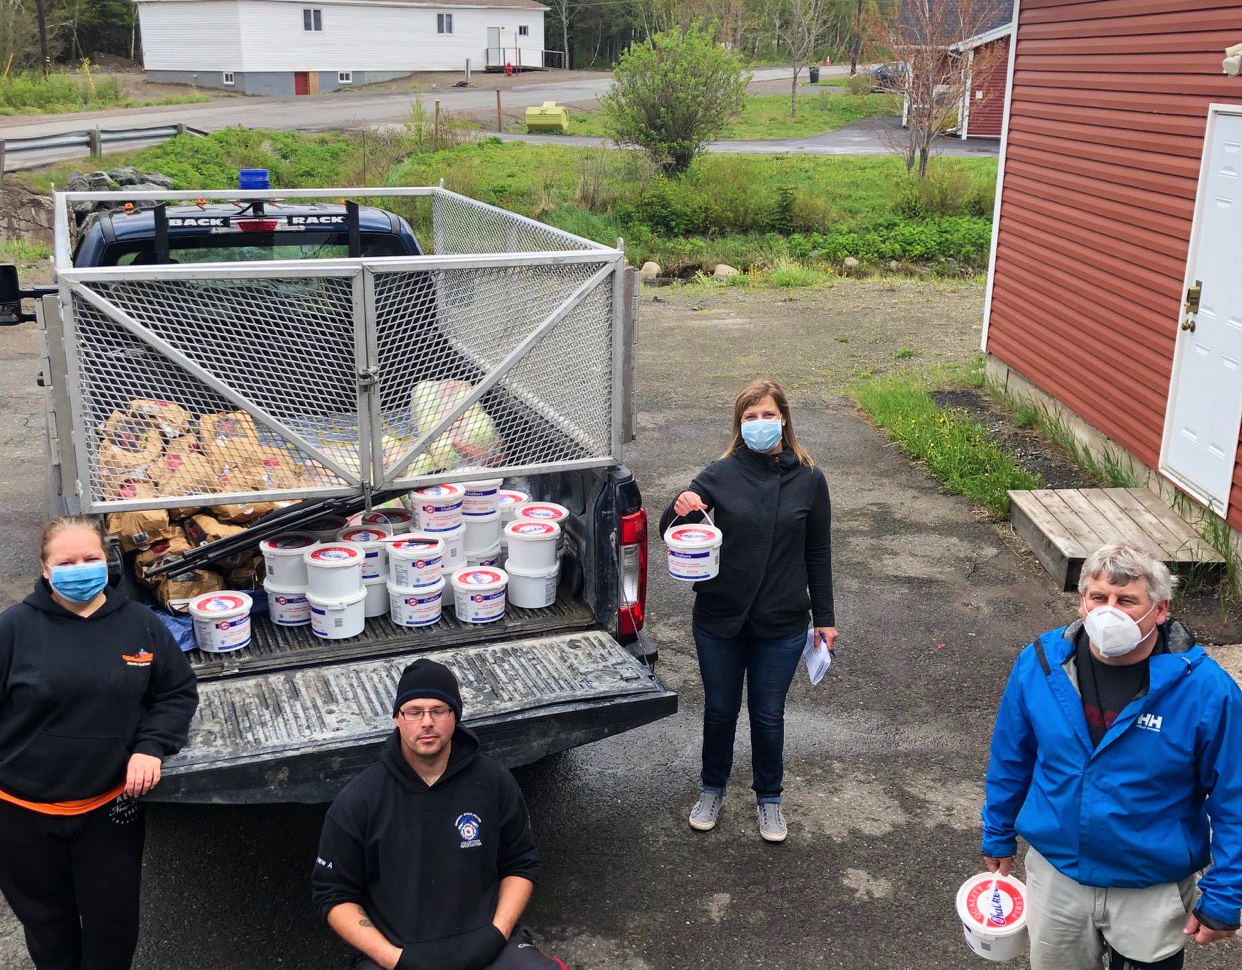 Volunteers in Bonavista helped organize hampers for community distribution. (Submitted by Saltwater Community Association)